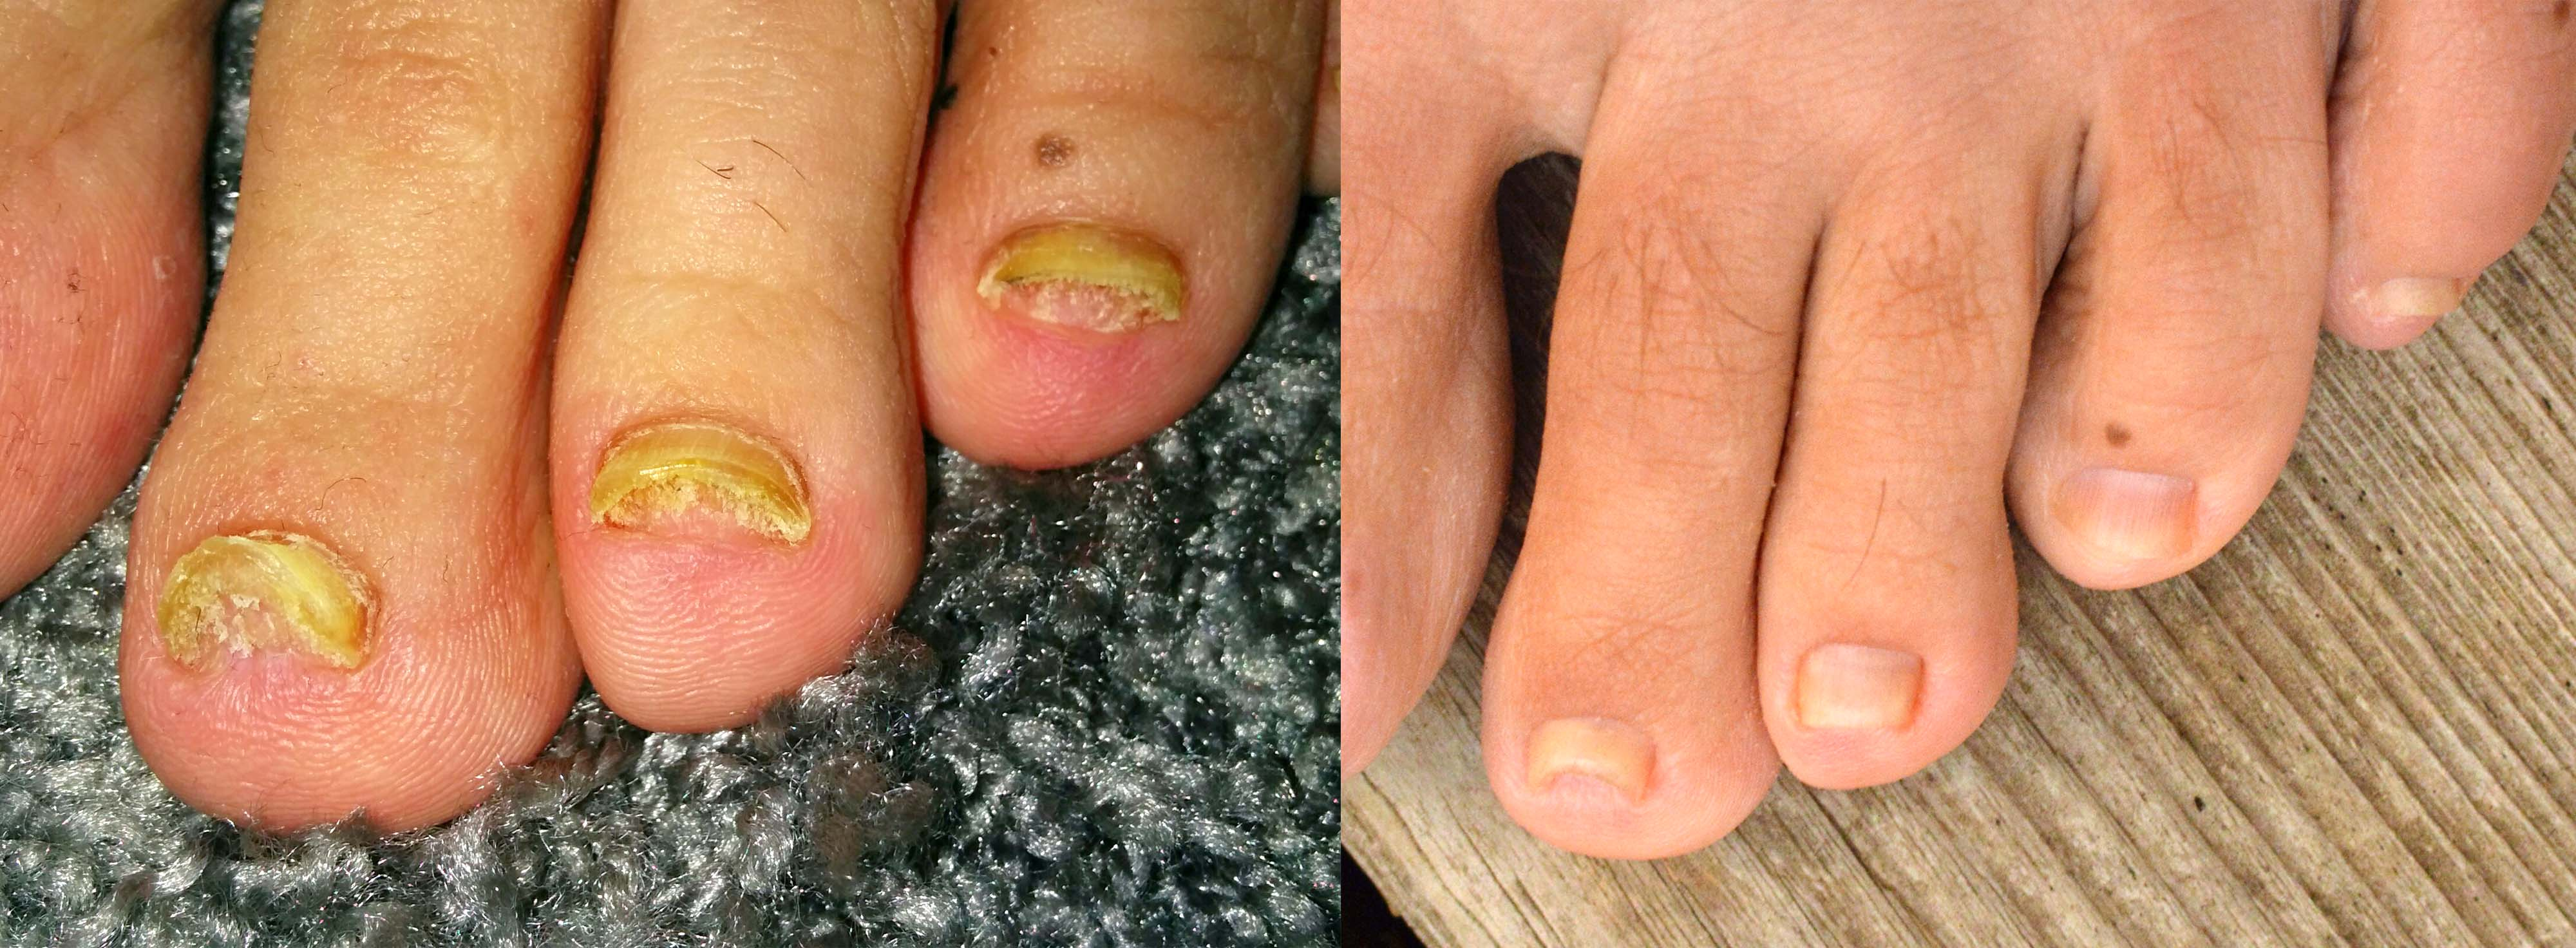 Nail Fungus Before And After Picture